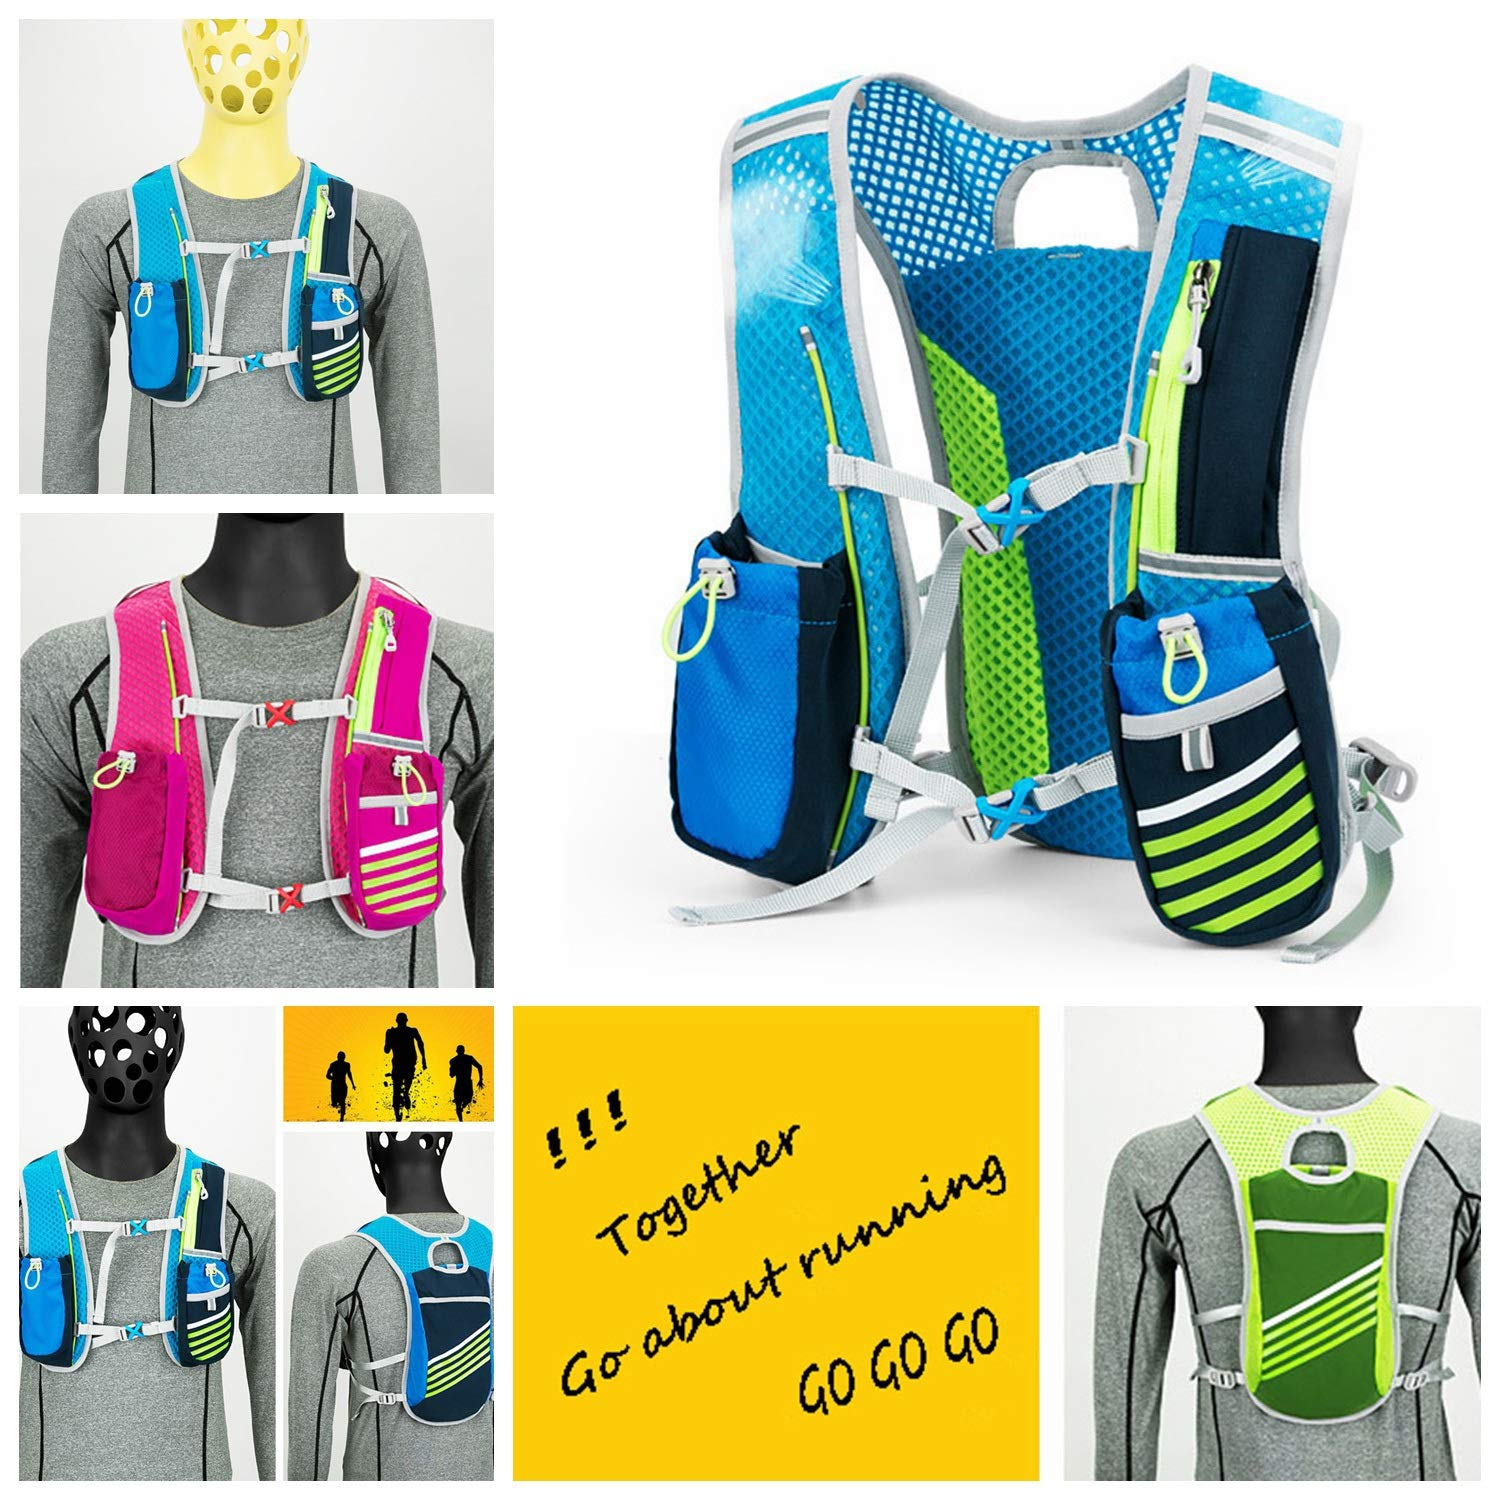 TZZ Sports Water Bag Backpack 5.5L 6 Pocket Running Hiking Backpack Trail Marathon Sports Racing Lightweight Hydrating Vest by TZZ (Image #4)